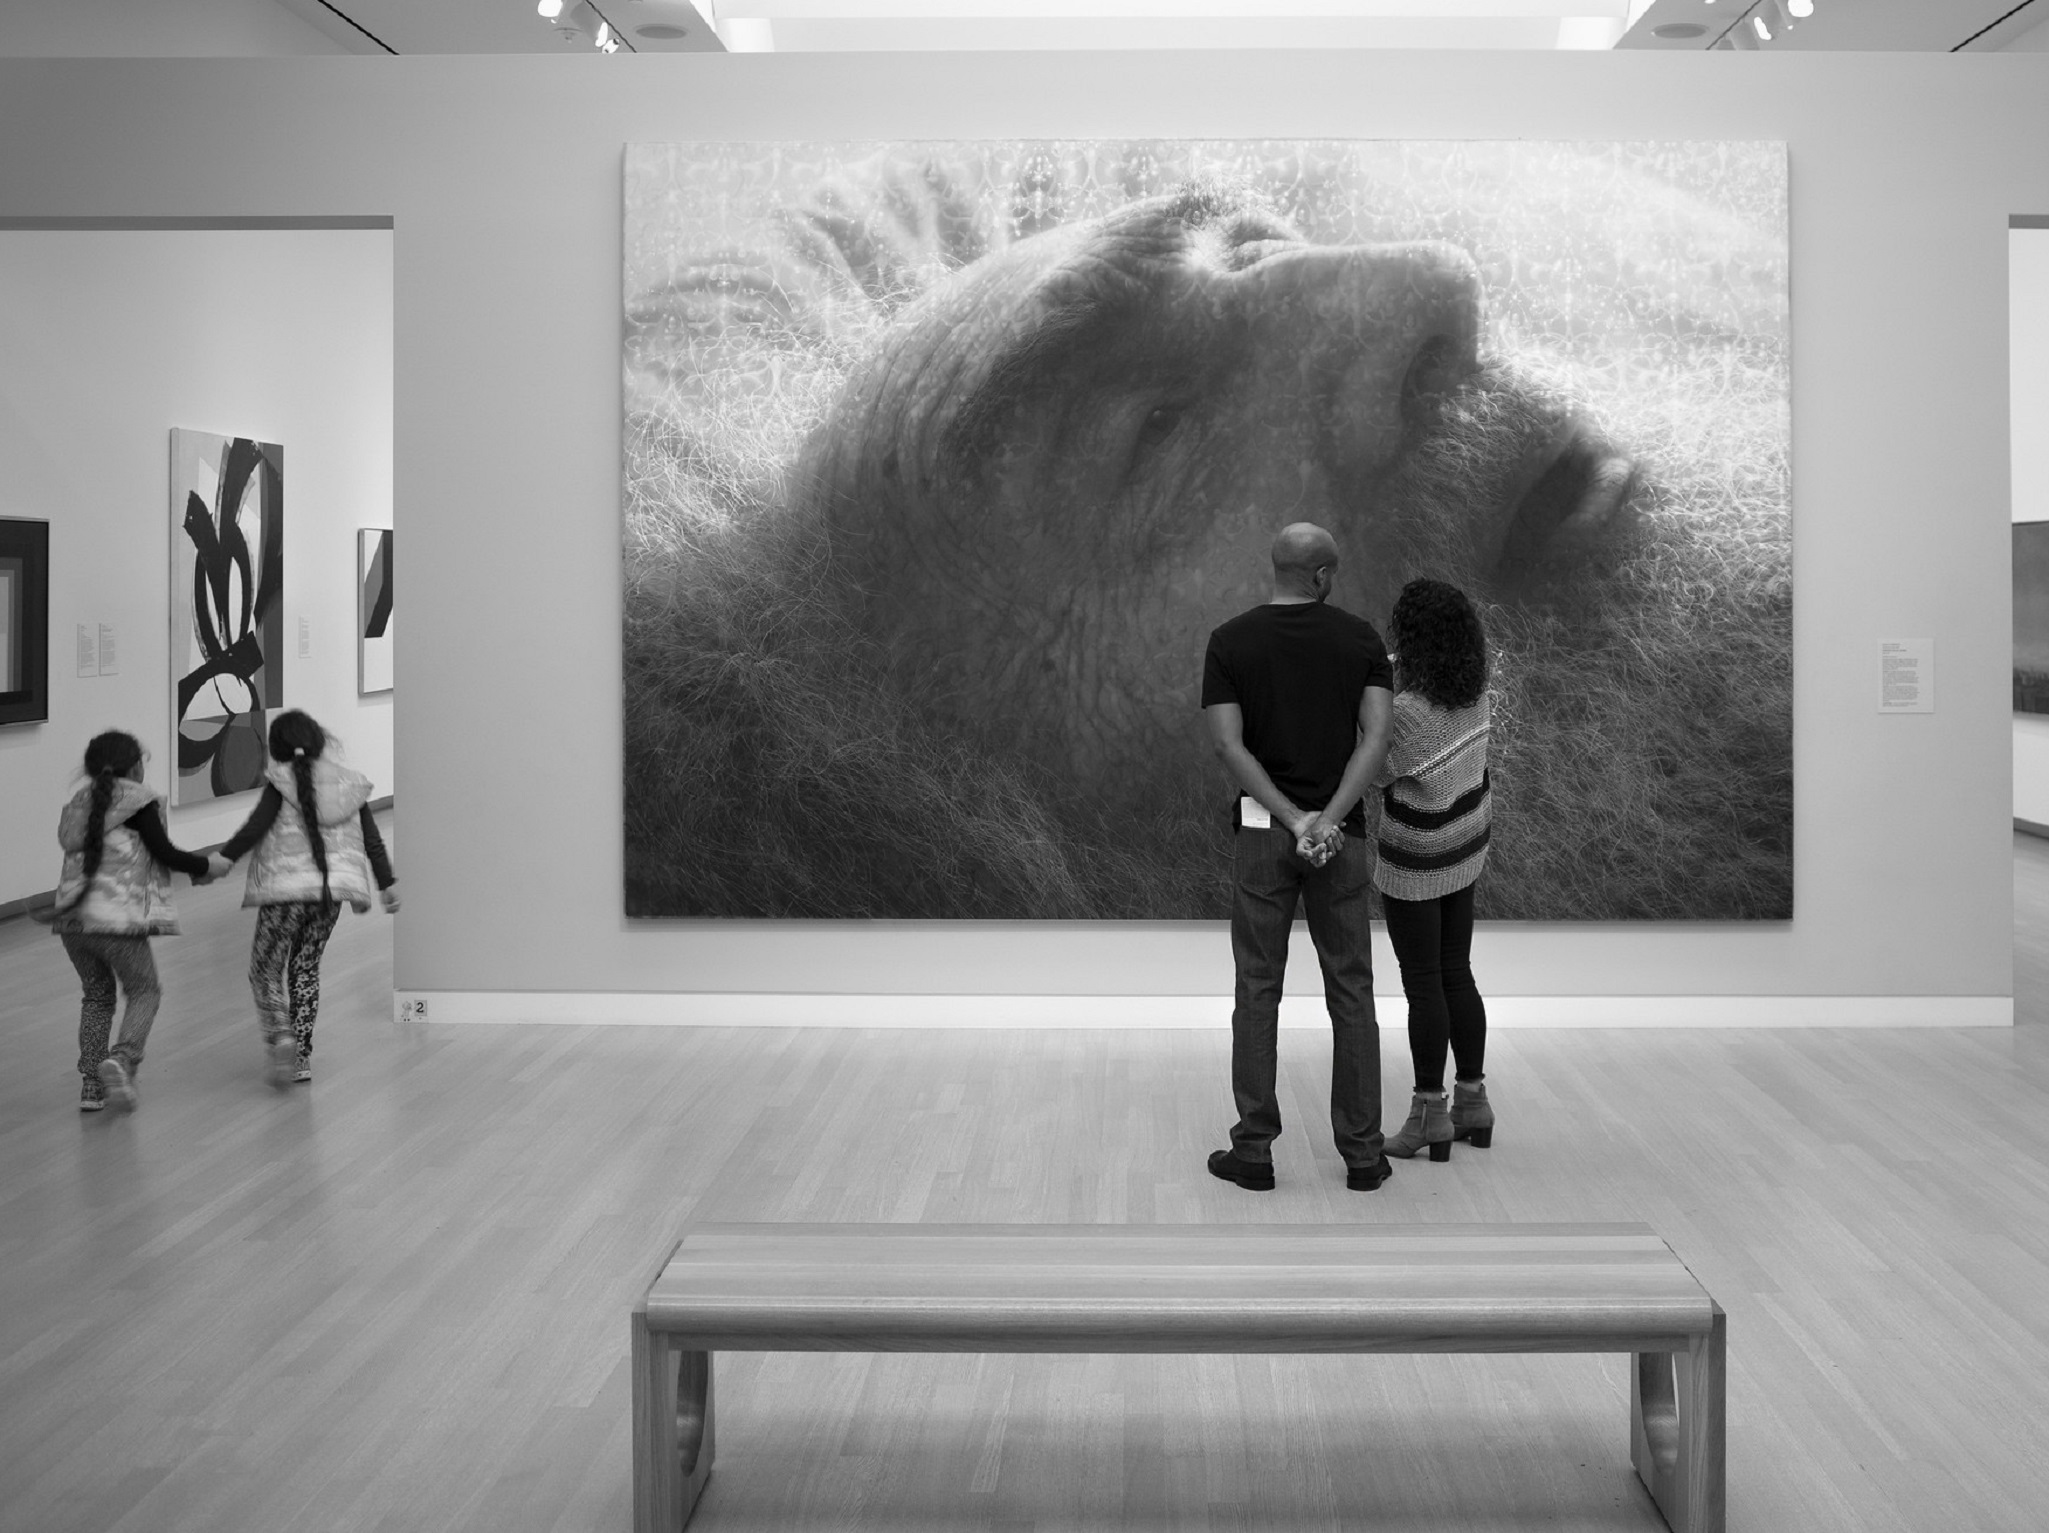 Two people standing in front of a painting at the museum